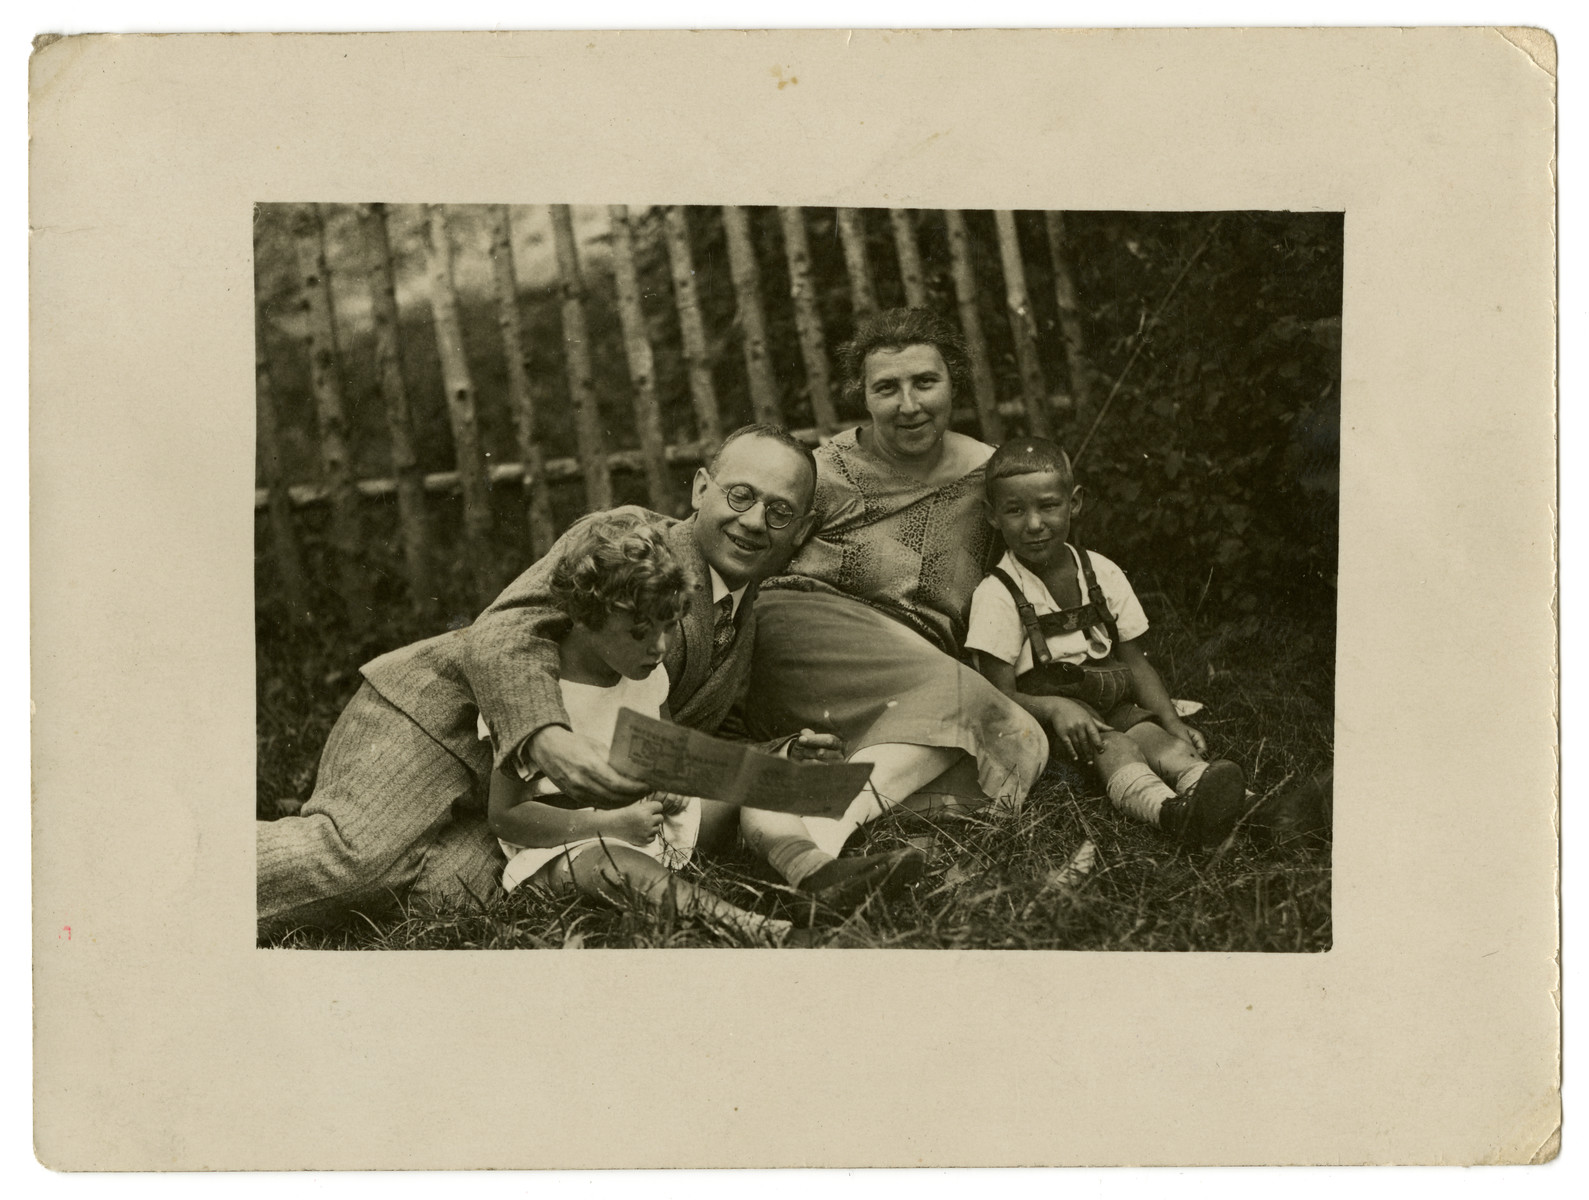 The Mueller family rests on the grass.  Left to right are Suse, Sebald, Laura and Norbert Mueller.